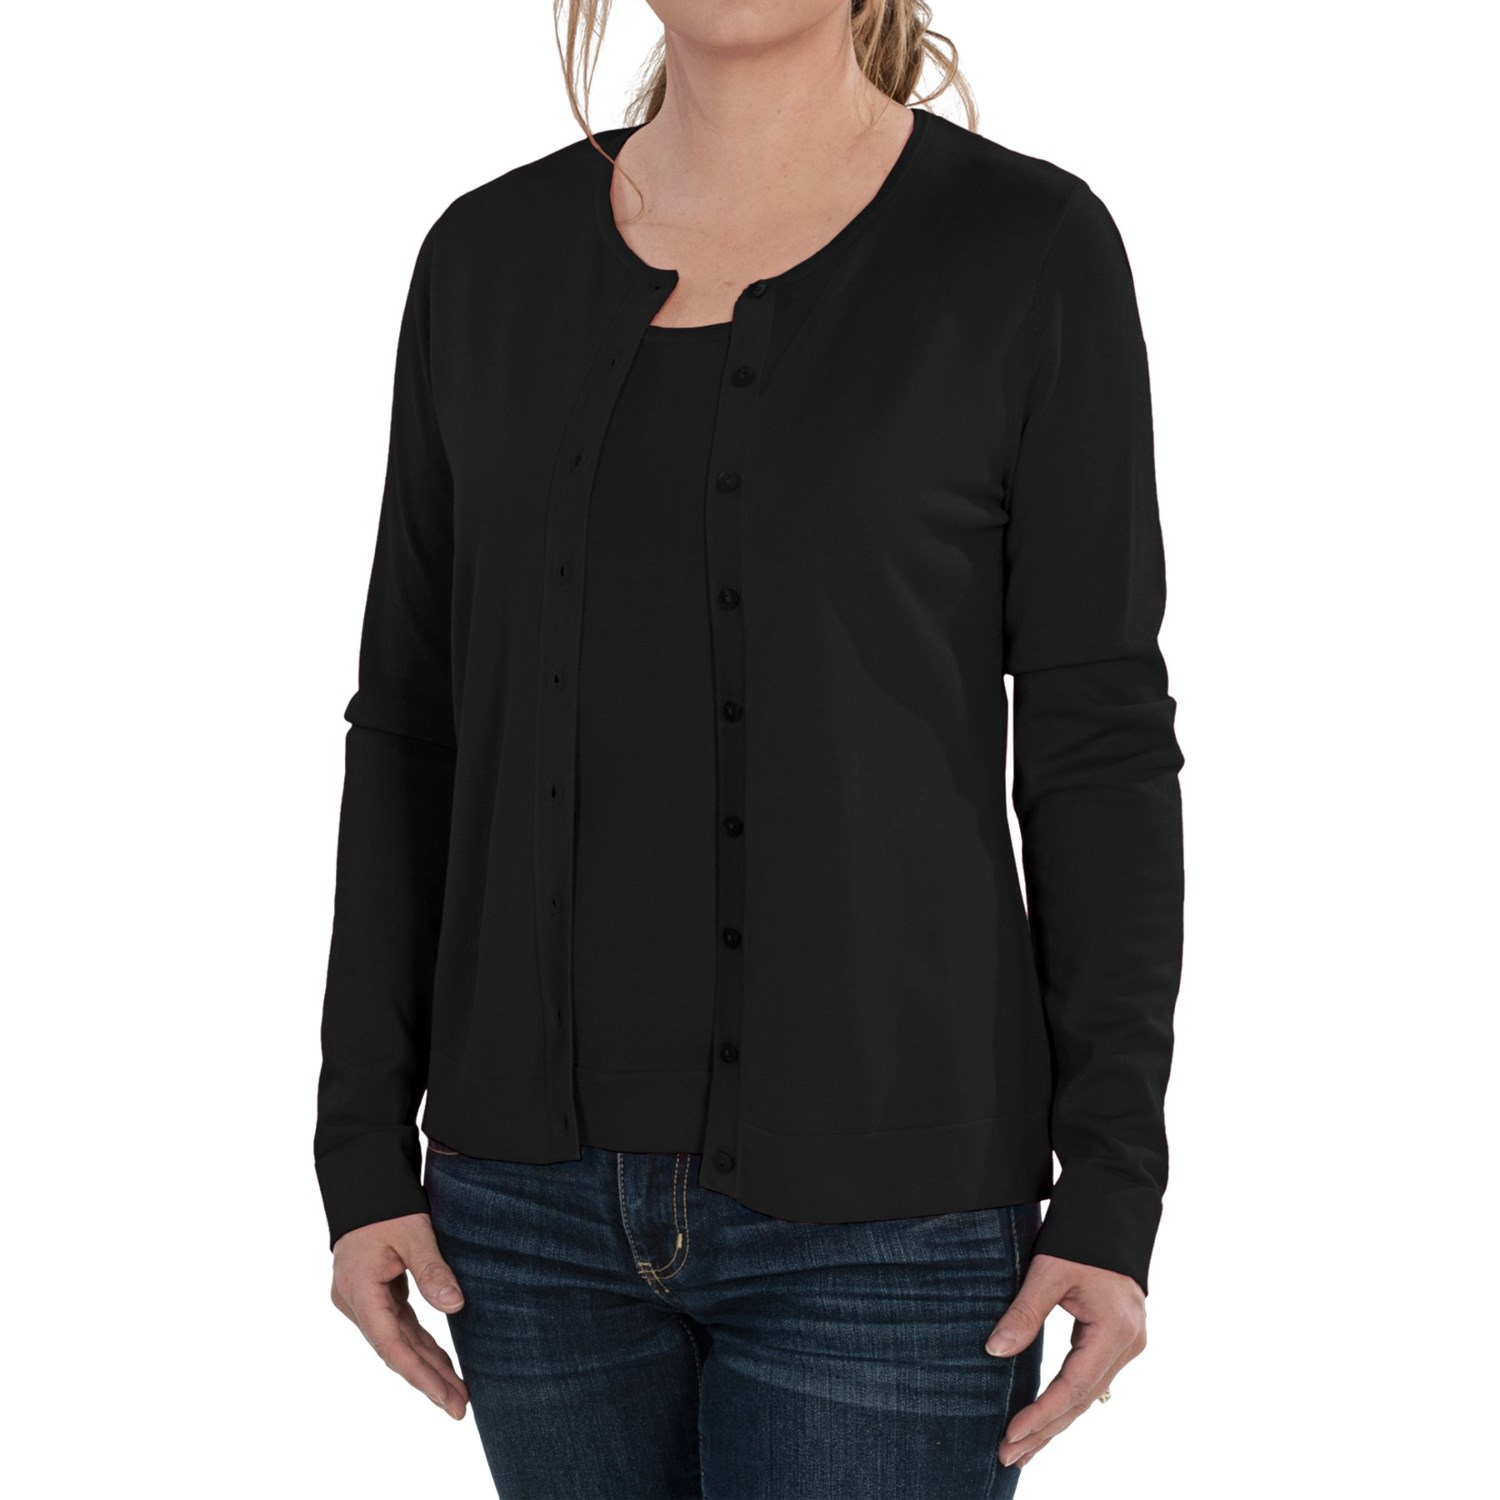 Shop silk cardigan sweater at Neiman Marcus, where you will find free shipping on the latest in fashion from top designers.